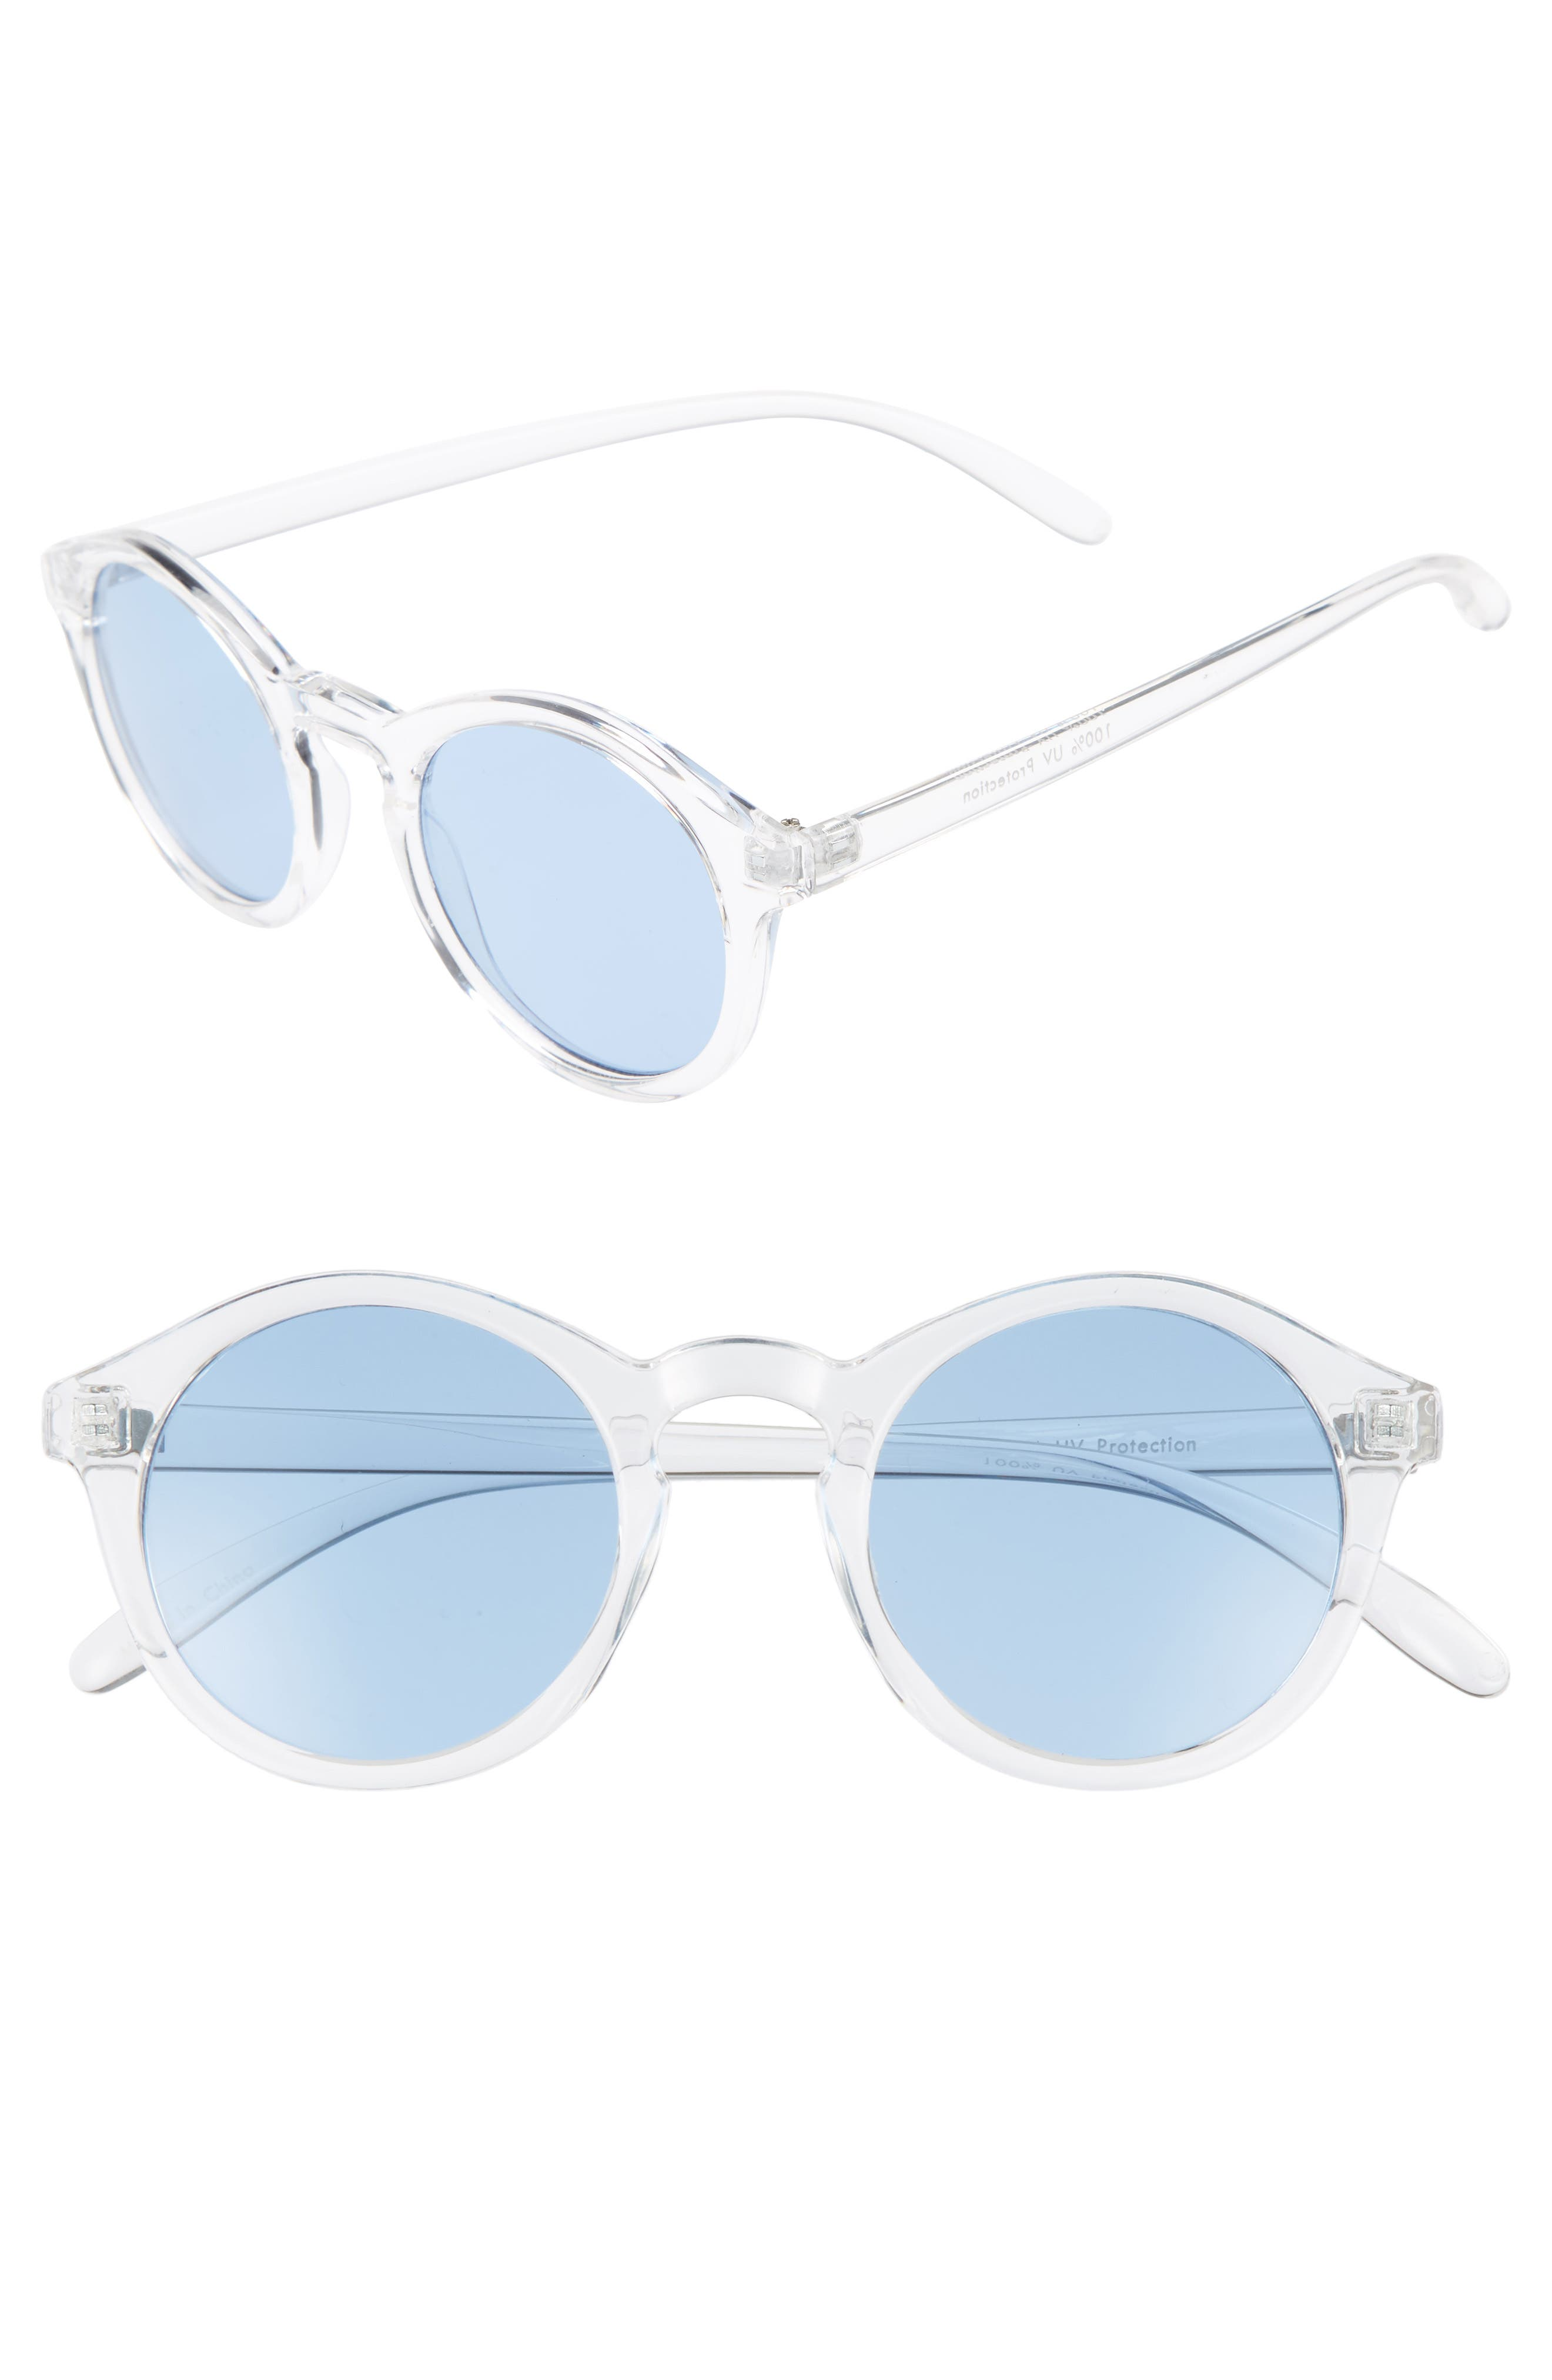 45mm Clear Plastic Small Round Sunglasses,                         Main,                         color, 100